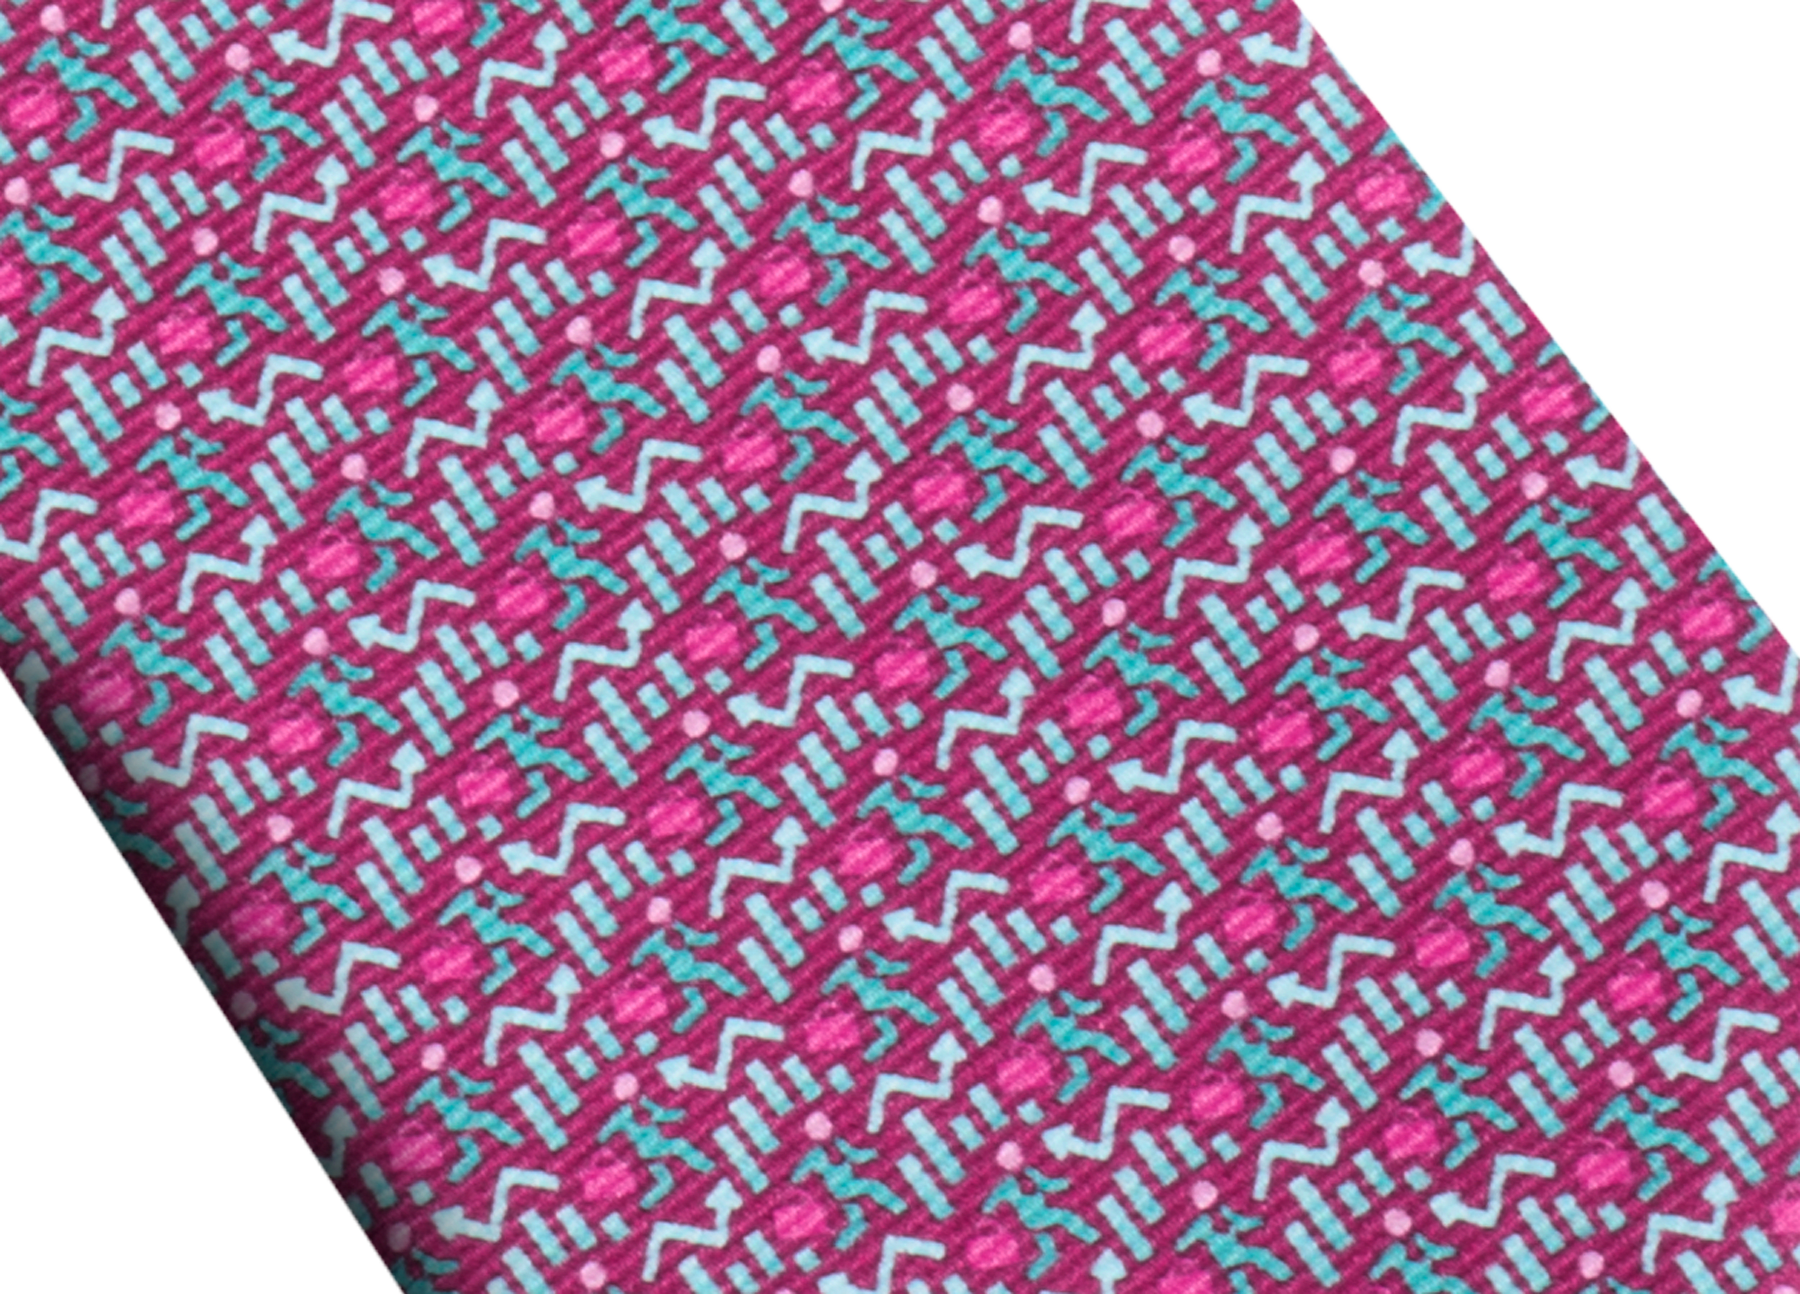 Fuchsia Running Business pattern seven-folds tie in fine saglione printed silk. 243655 image 2